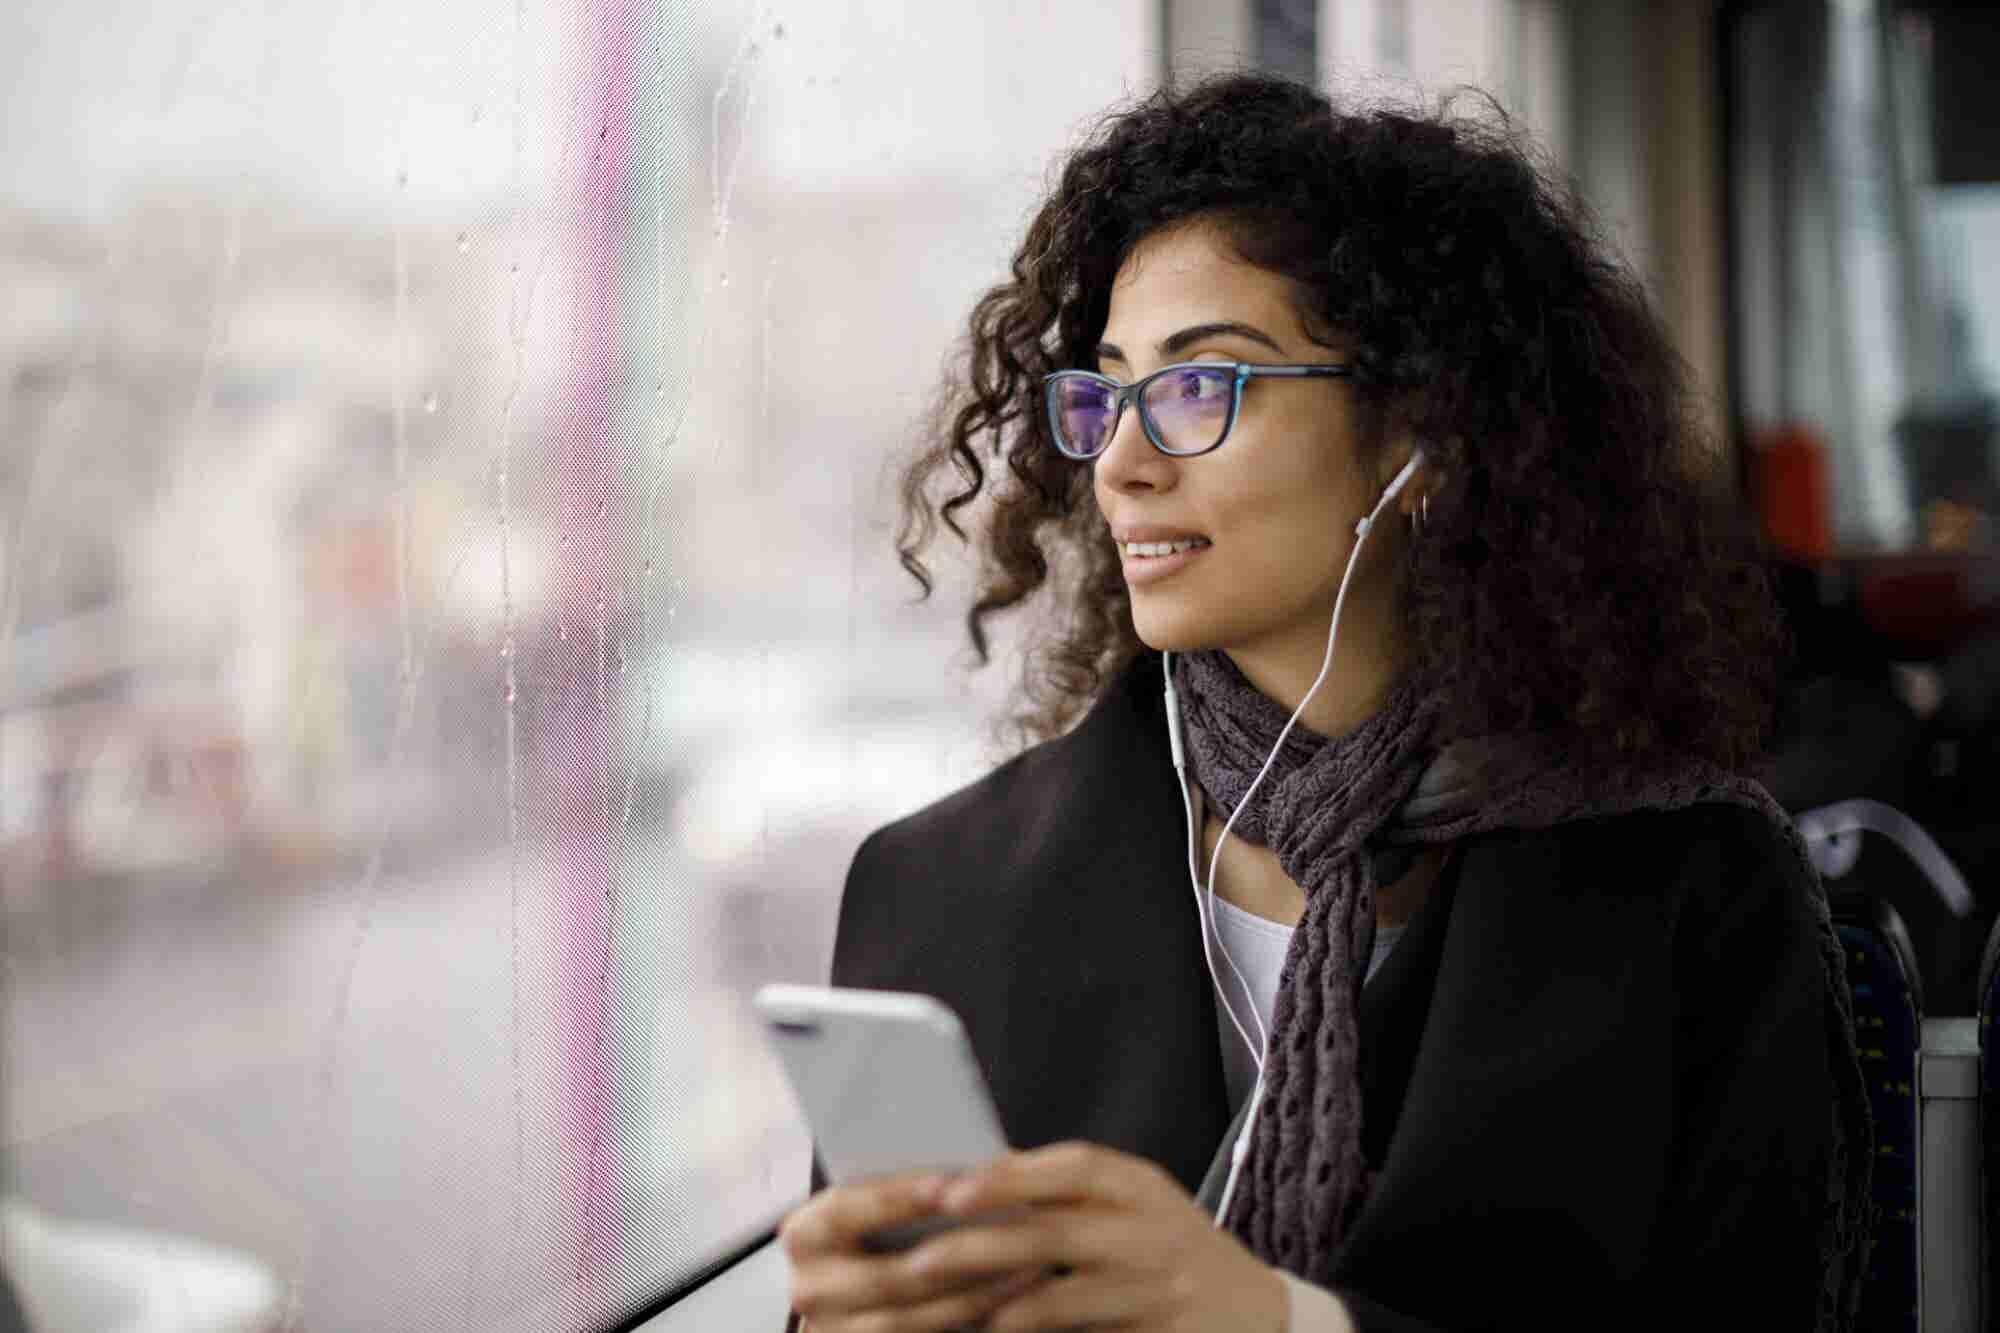 5 Podcasts That Are a Must for a Productive Workday